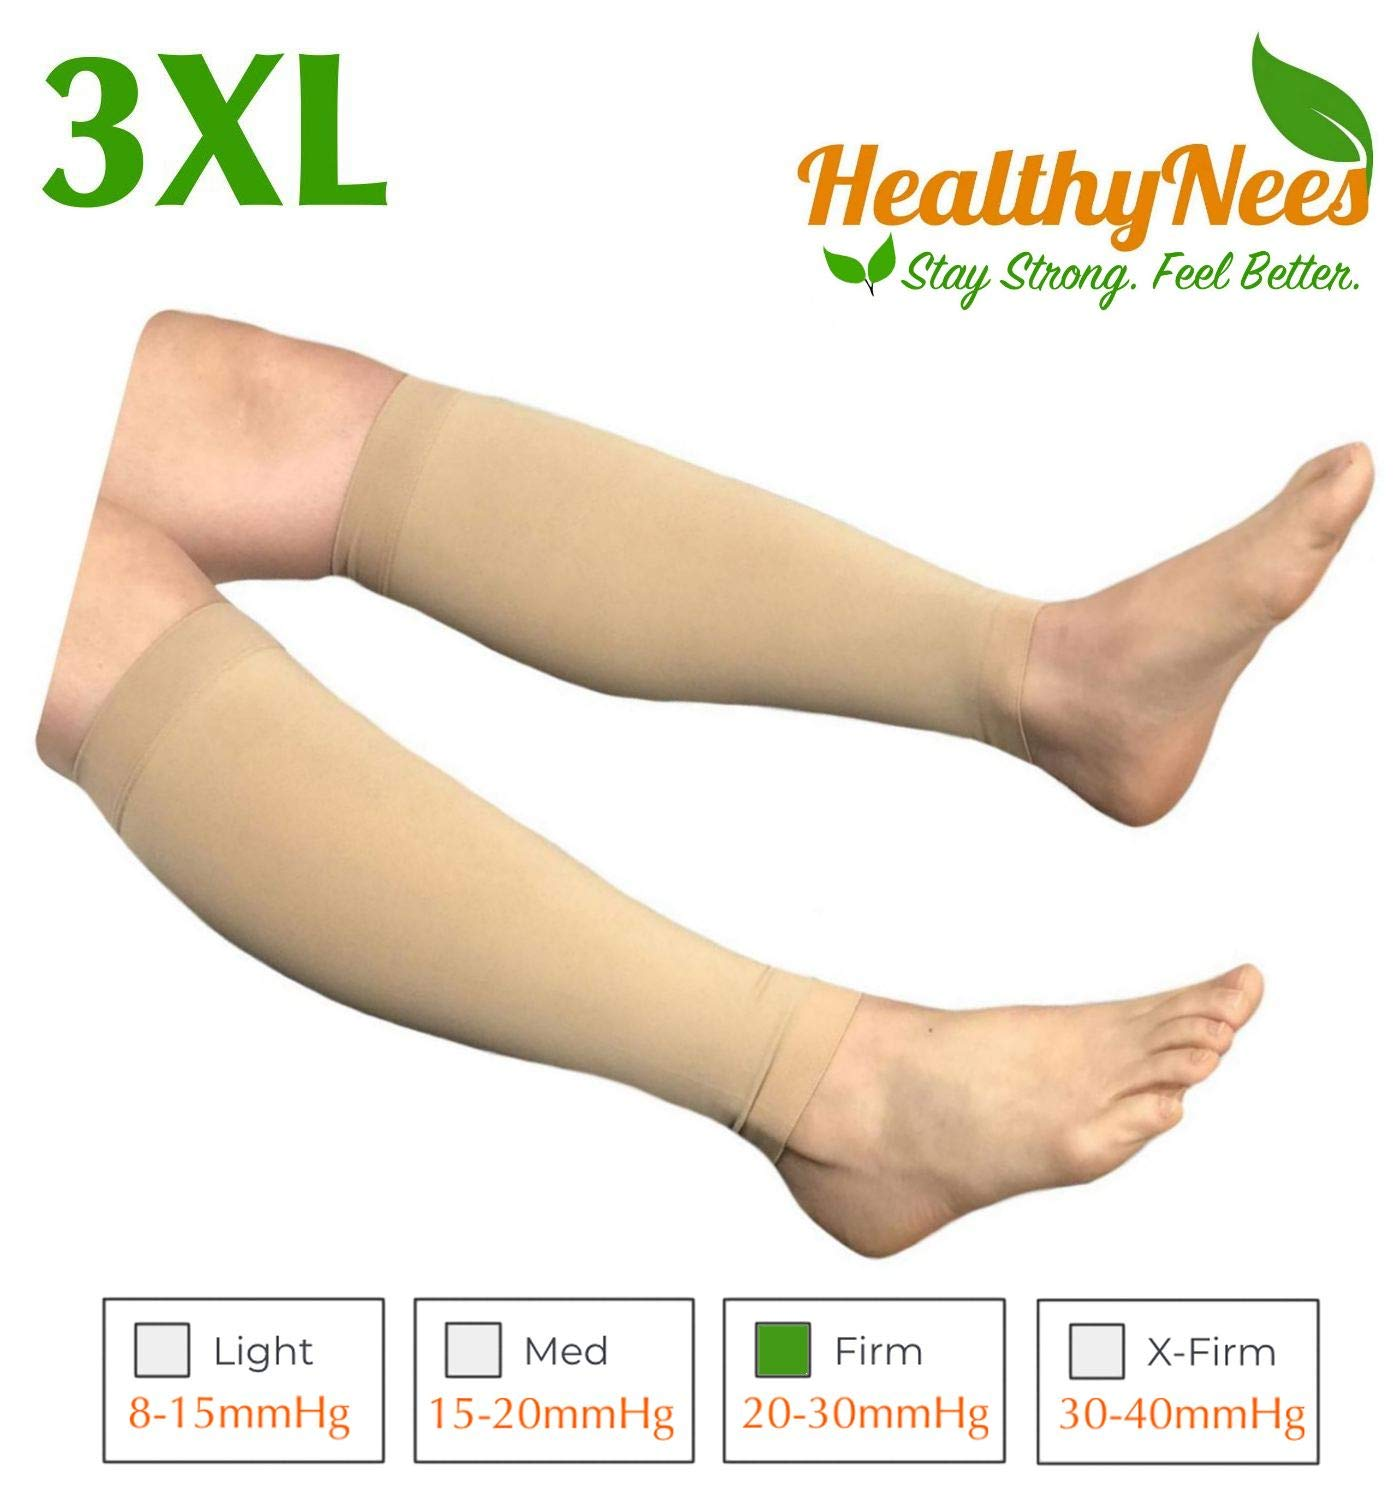 HealthyNees Shin Calf Sleeve 20-30 mmHg Medical Compression Circulation Extra Wide Plus Size Big Tall Leg Thick Calves Firm Support (Beige, Big Calf 3XL) by HealthyNees